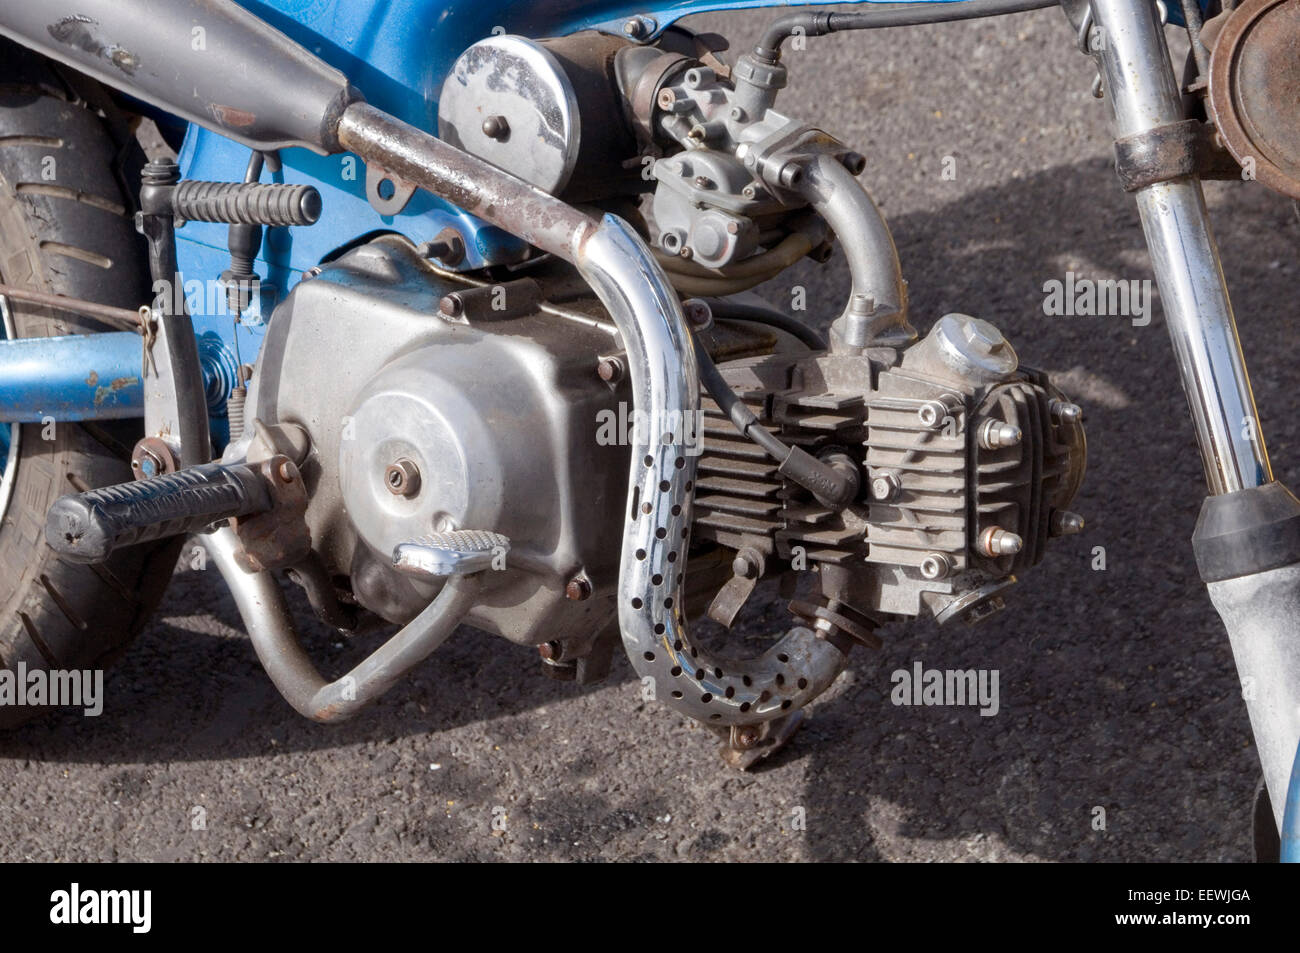 Honda monkey bike engine engines single cylinder two stroke internal combustion motor bike cycle cycles bikes